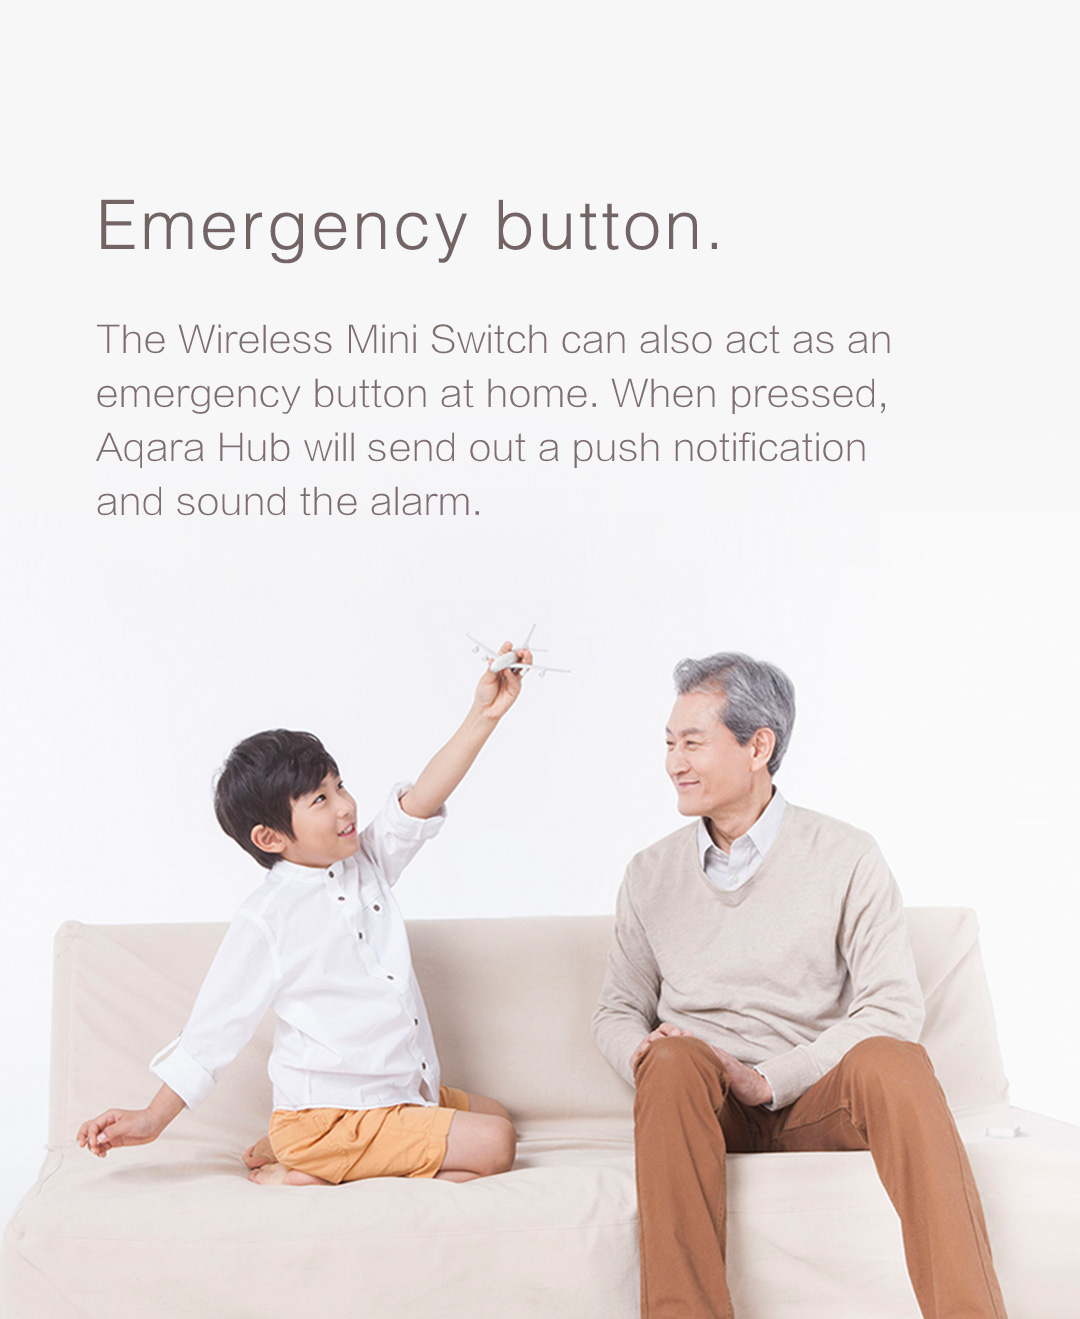 Aqara smart wireless switch can serve as a emergency button with aqara smart alarm siren